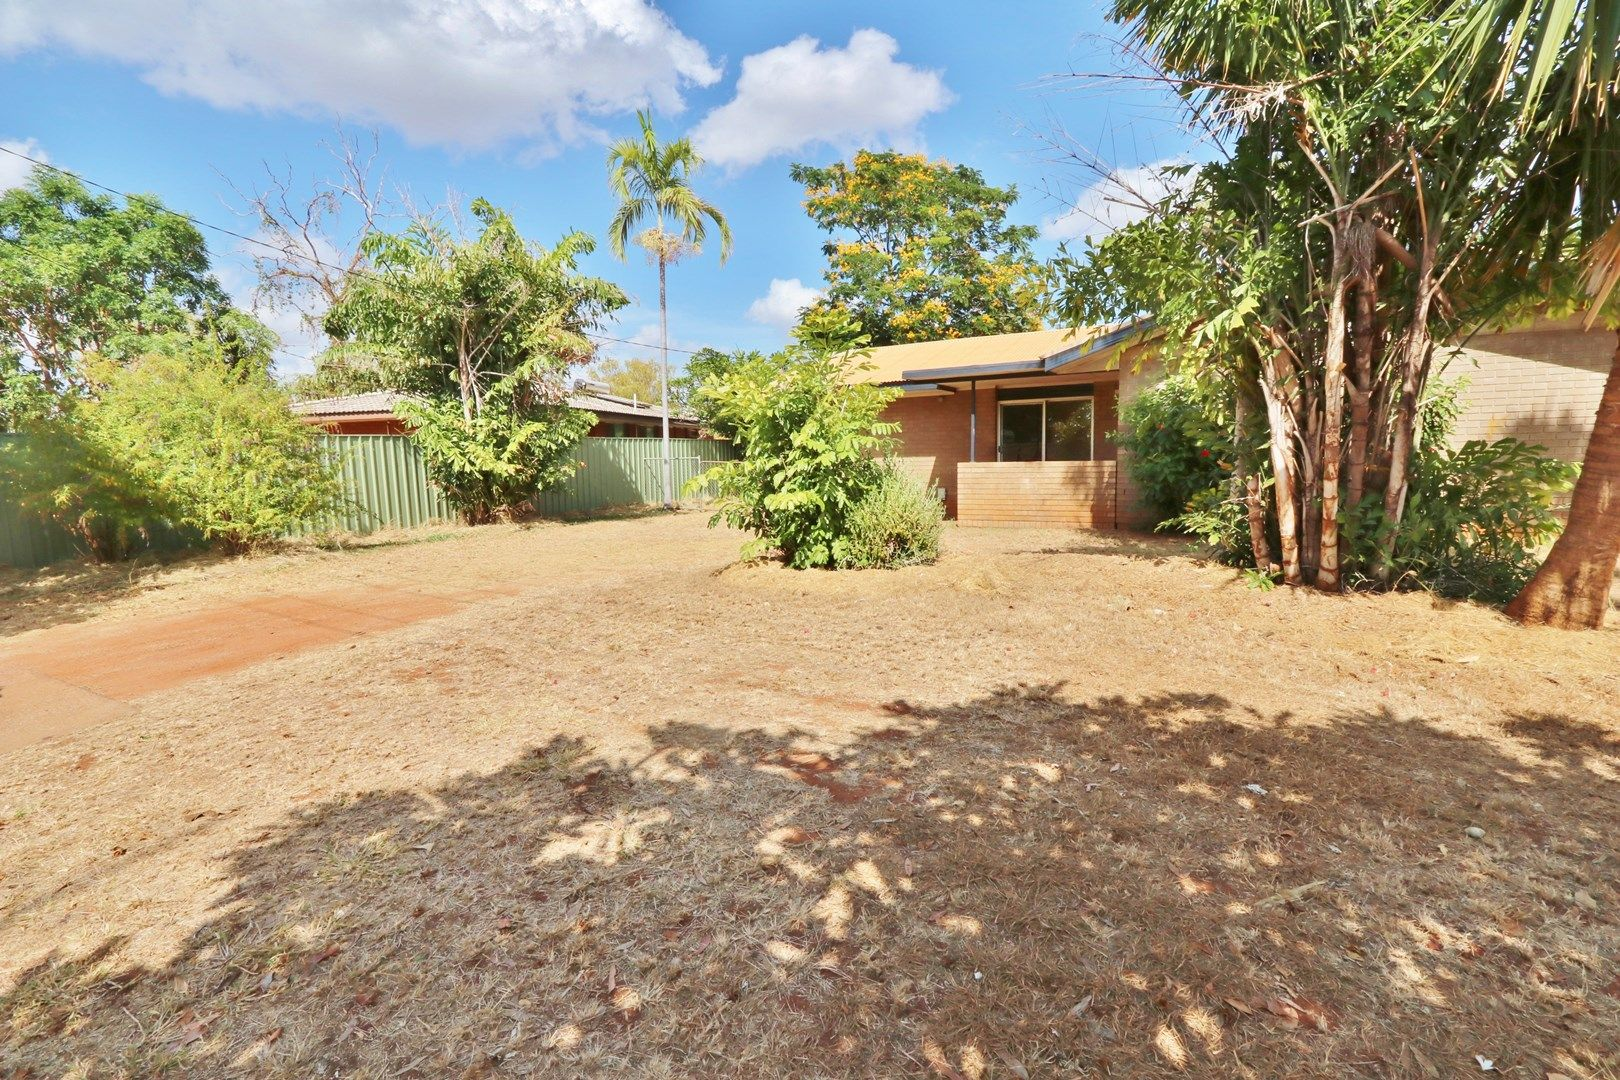 3 bedrooms House in 3 Frangipanni Court KATHERINE NT, 0850